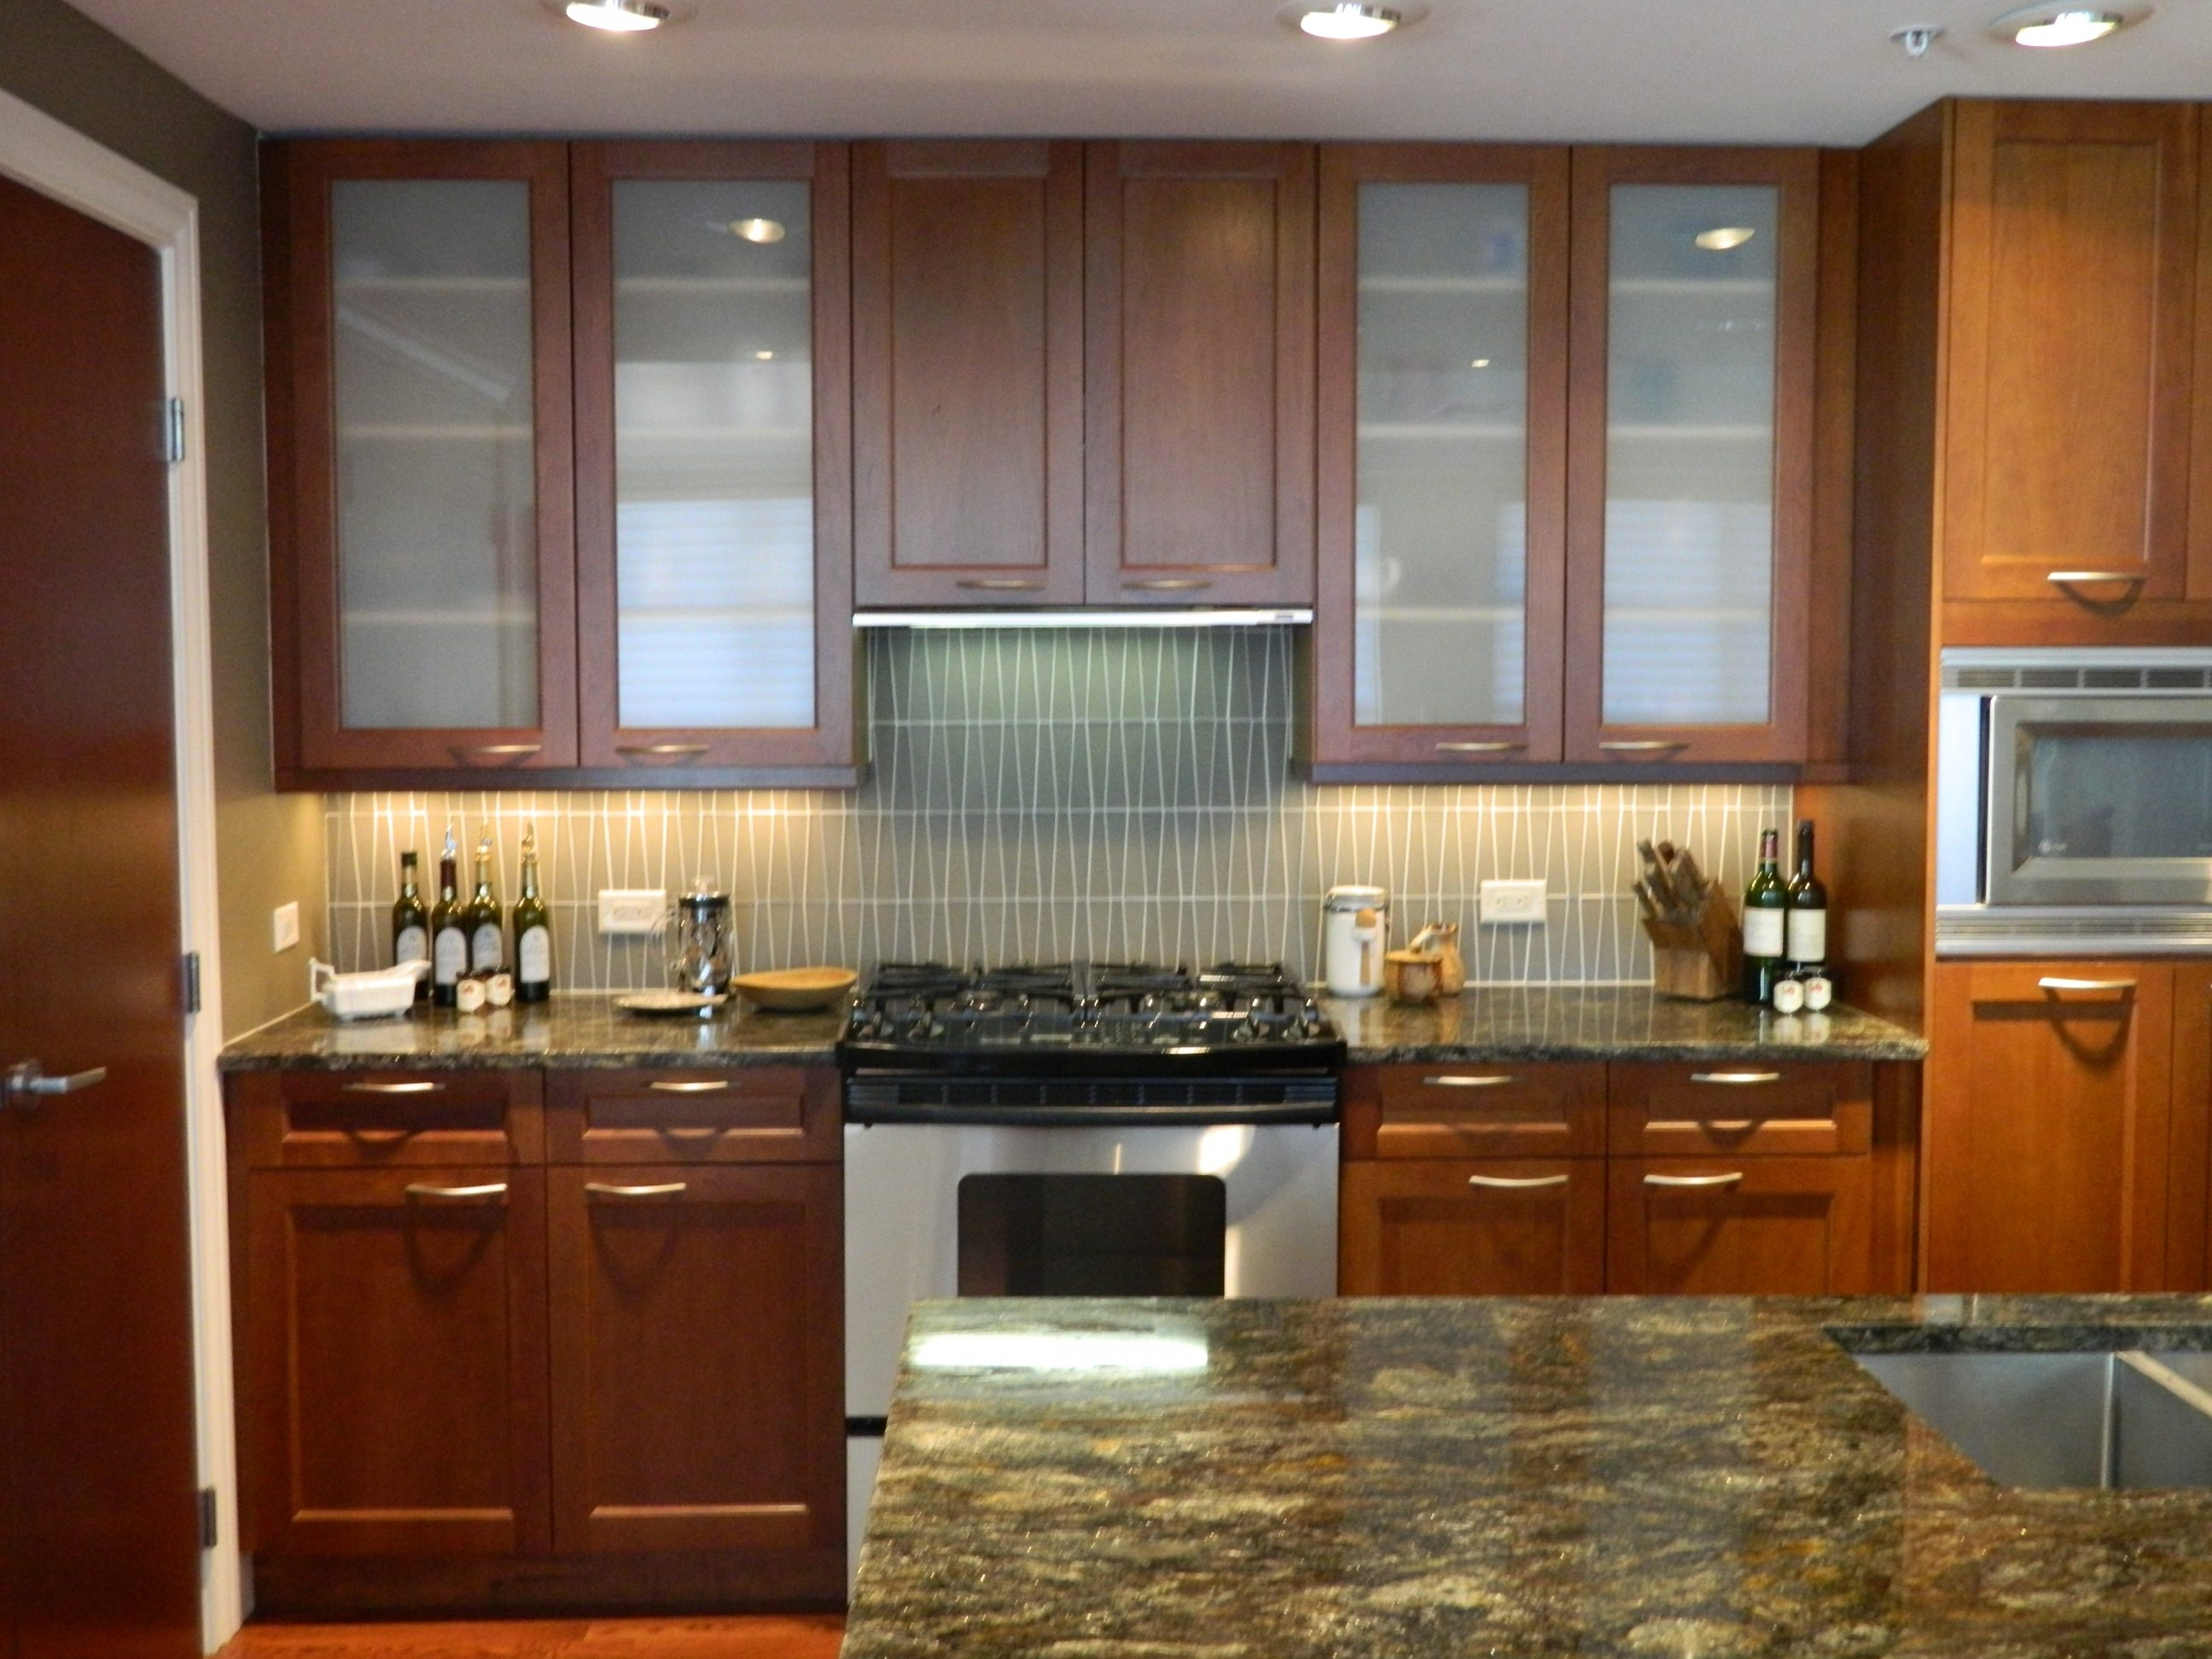 Rustic Kitchen Cabinets - Glass Kitchen Cabinets Doors – Federicorosa with regard to Kitchen Glass Cabinet